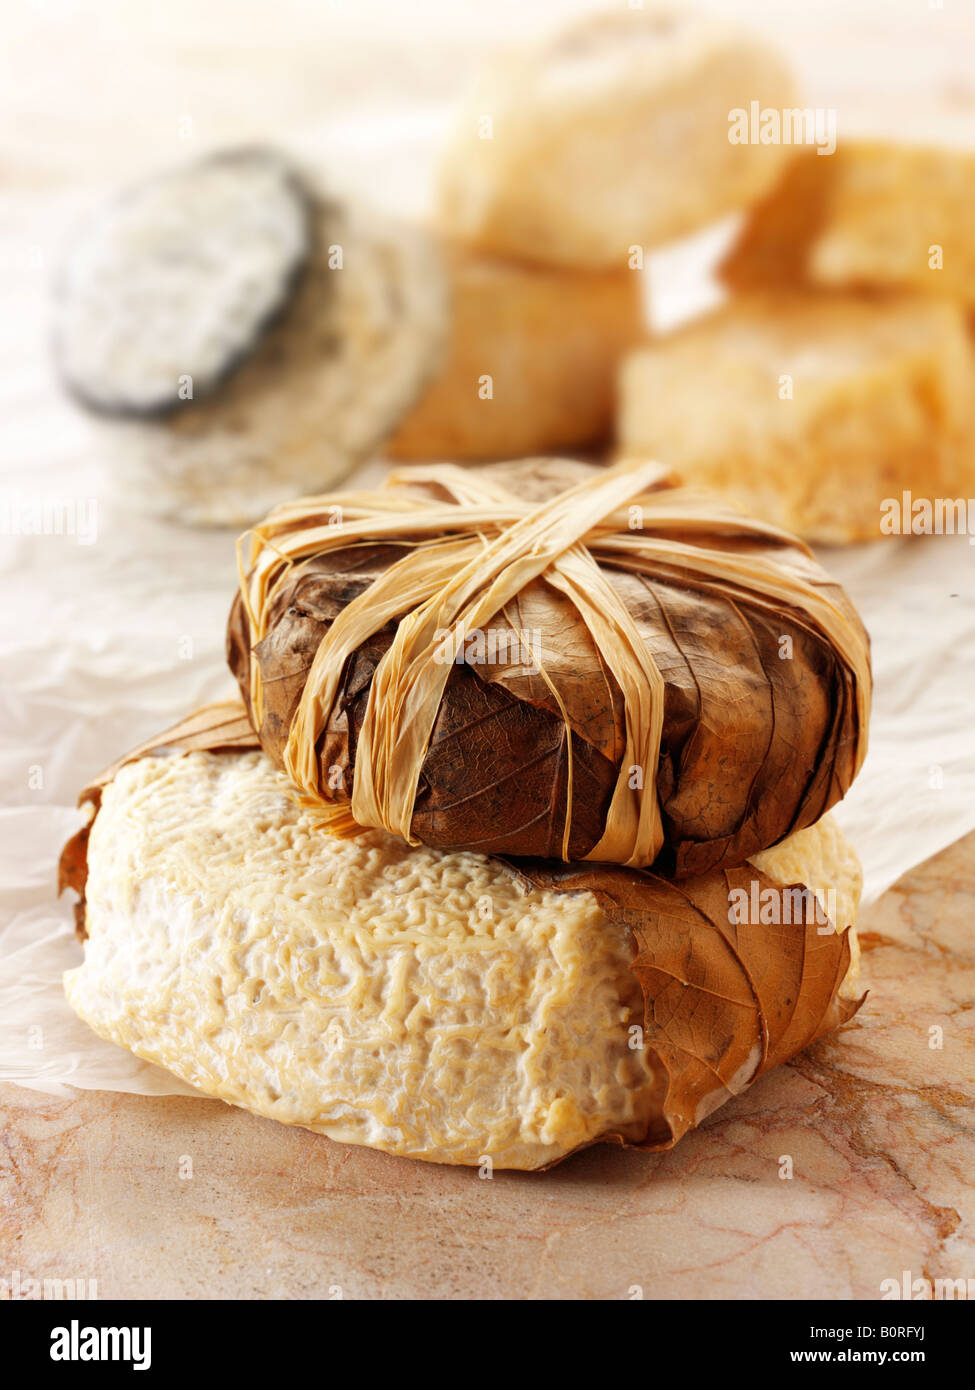 Regional French Cheeses - From Top - Bannon, Normandy Chevre, - Stock Image